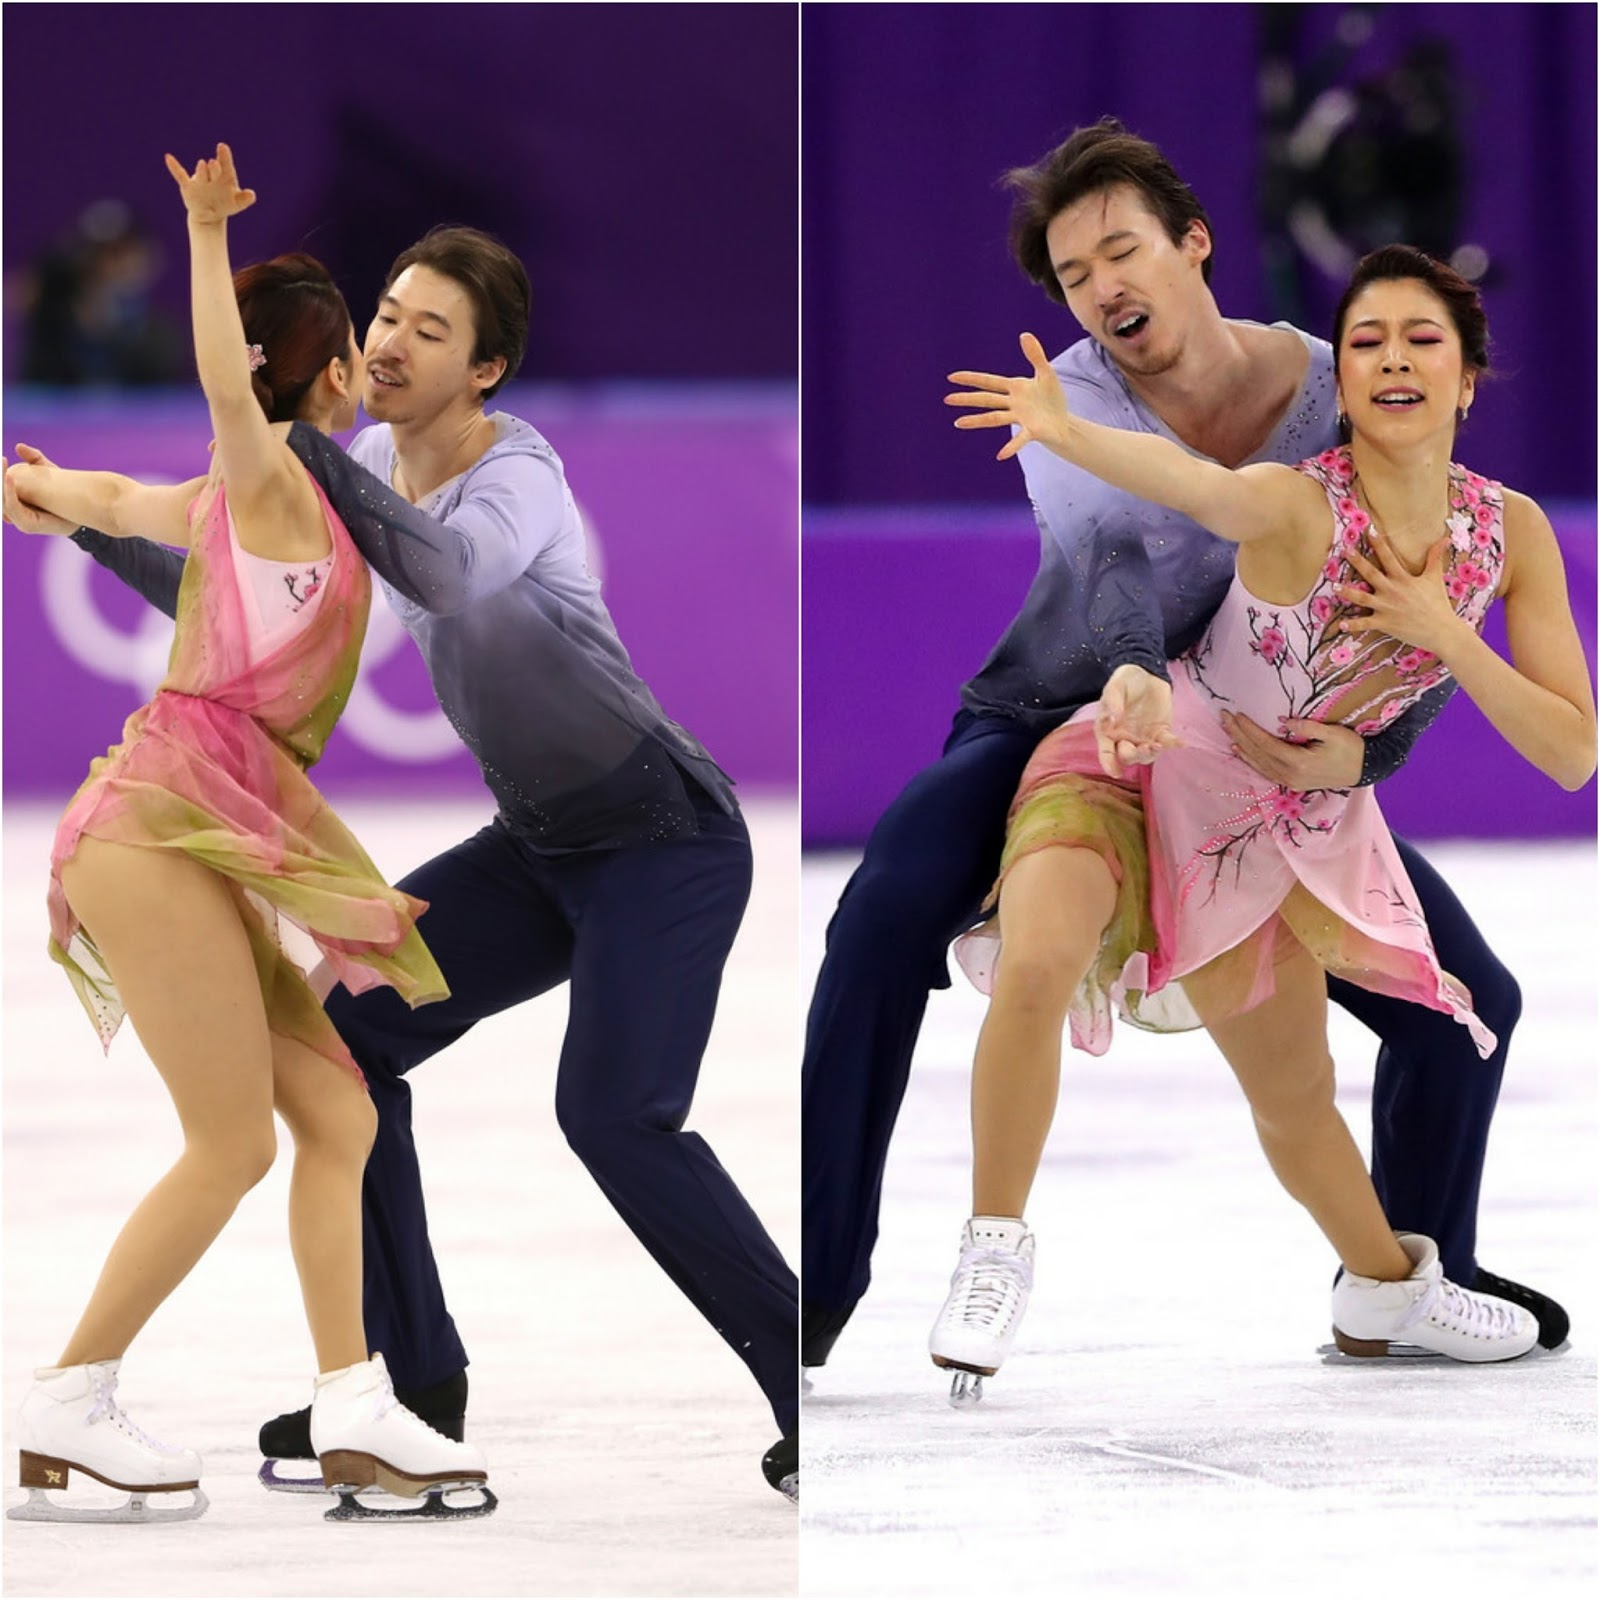 Christmas Ice Skating Costumes.Ice Style 2018 Winter Olympics Figure Skating Costumes